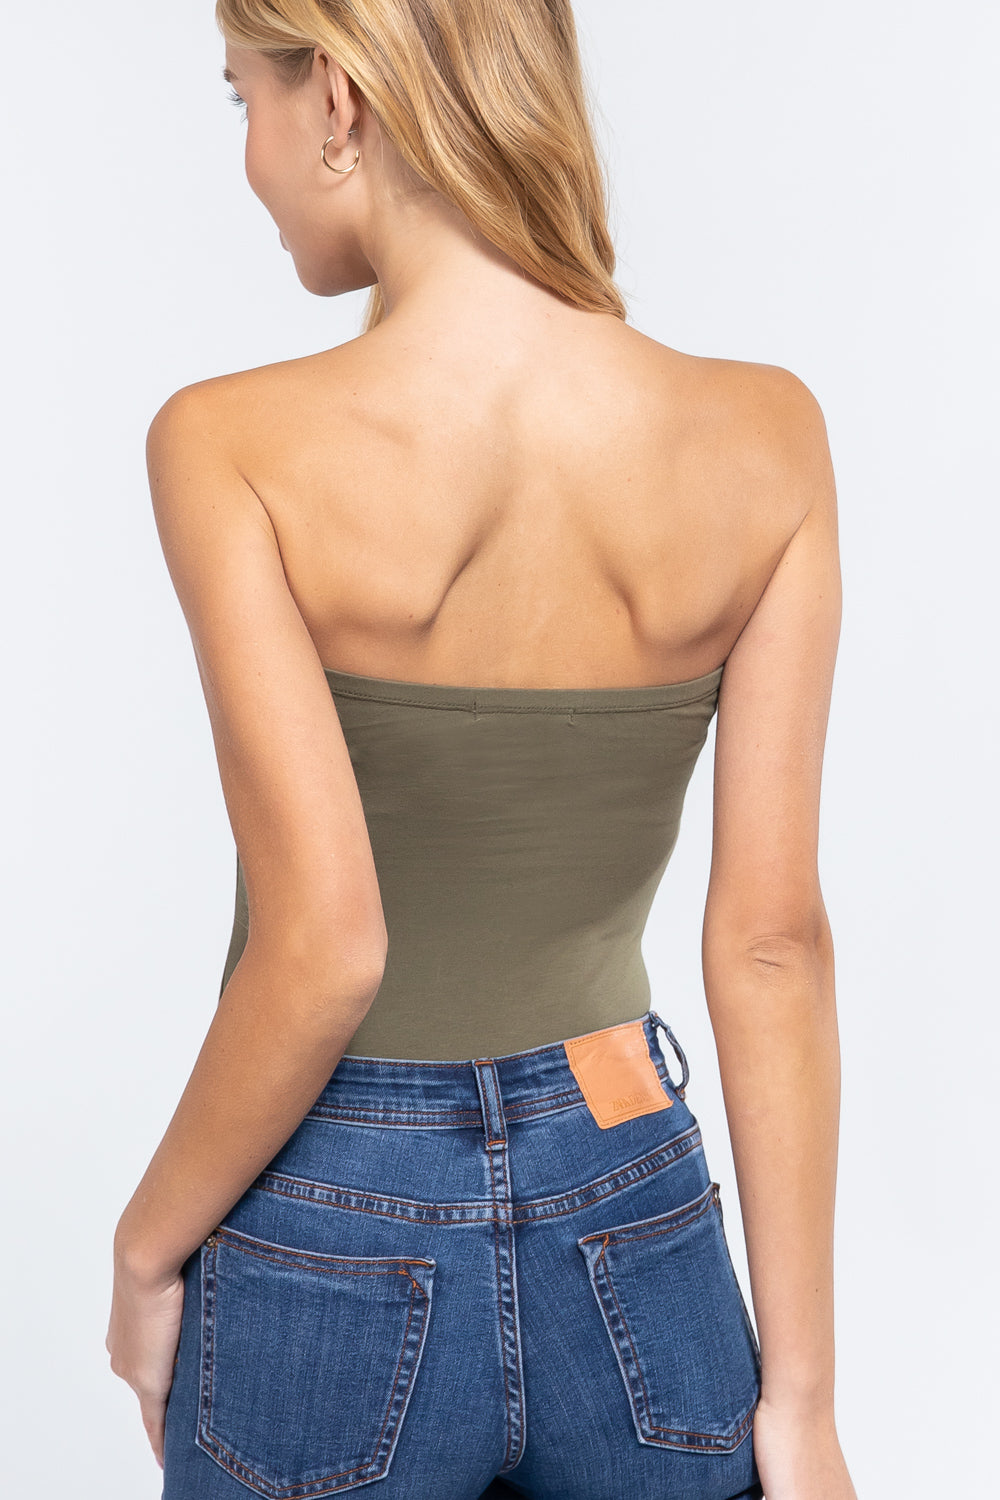 Women's Casual Sleeveless Stretchy Cotton Strapless Sexy Tube Top Bodysuit